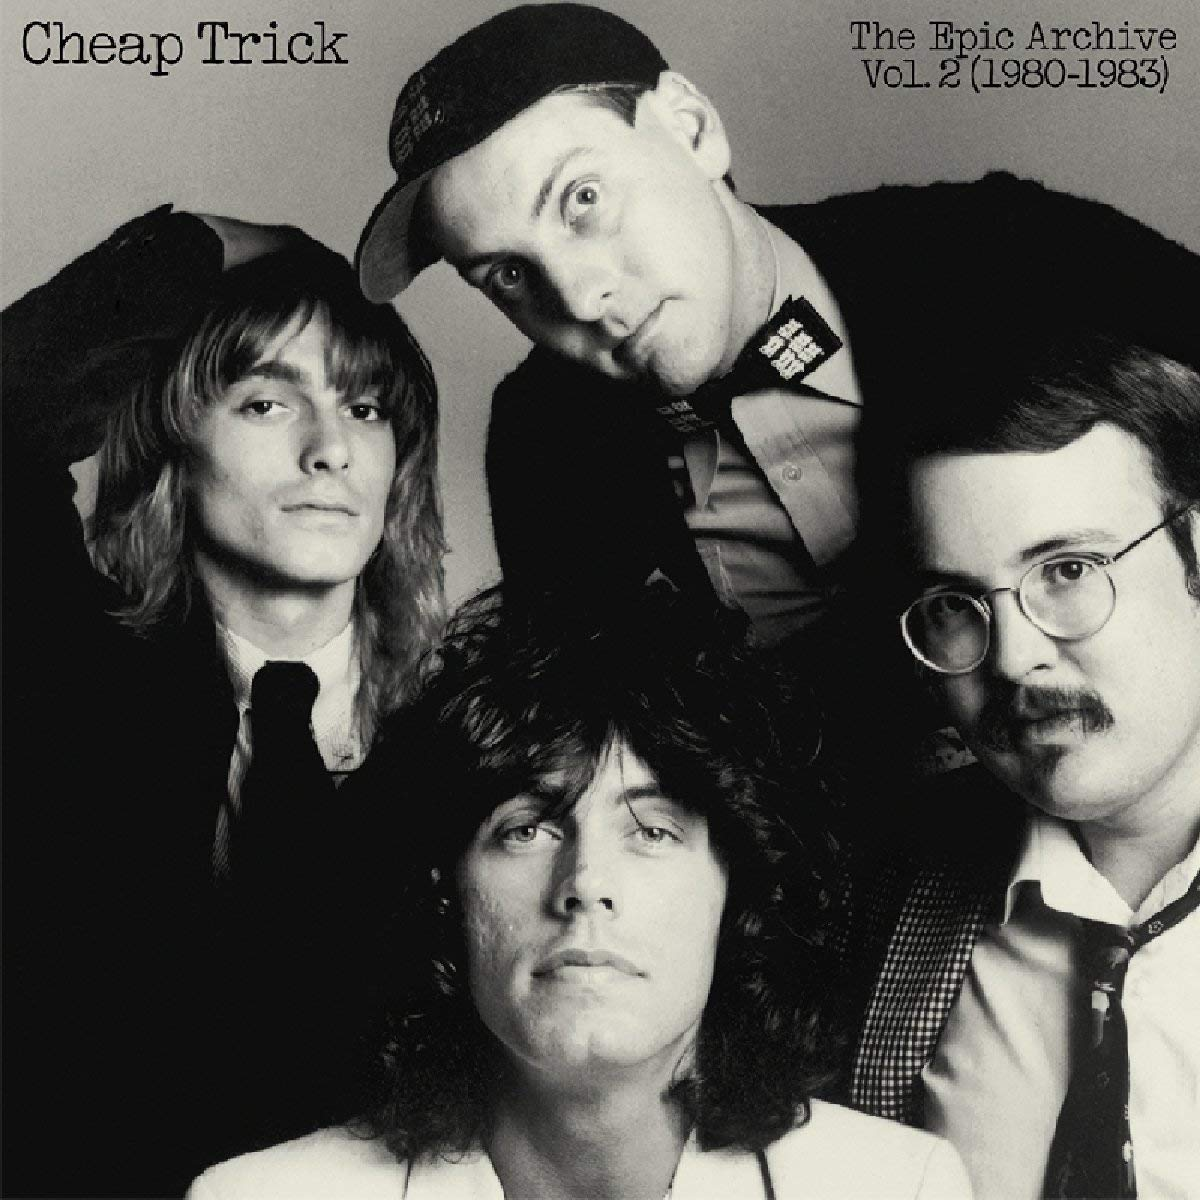 Cheap Trick: Epic Archive Vol.2 1980-1983 (Colored Vinyl) Vinyl 2LP (Record Store Day)